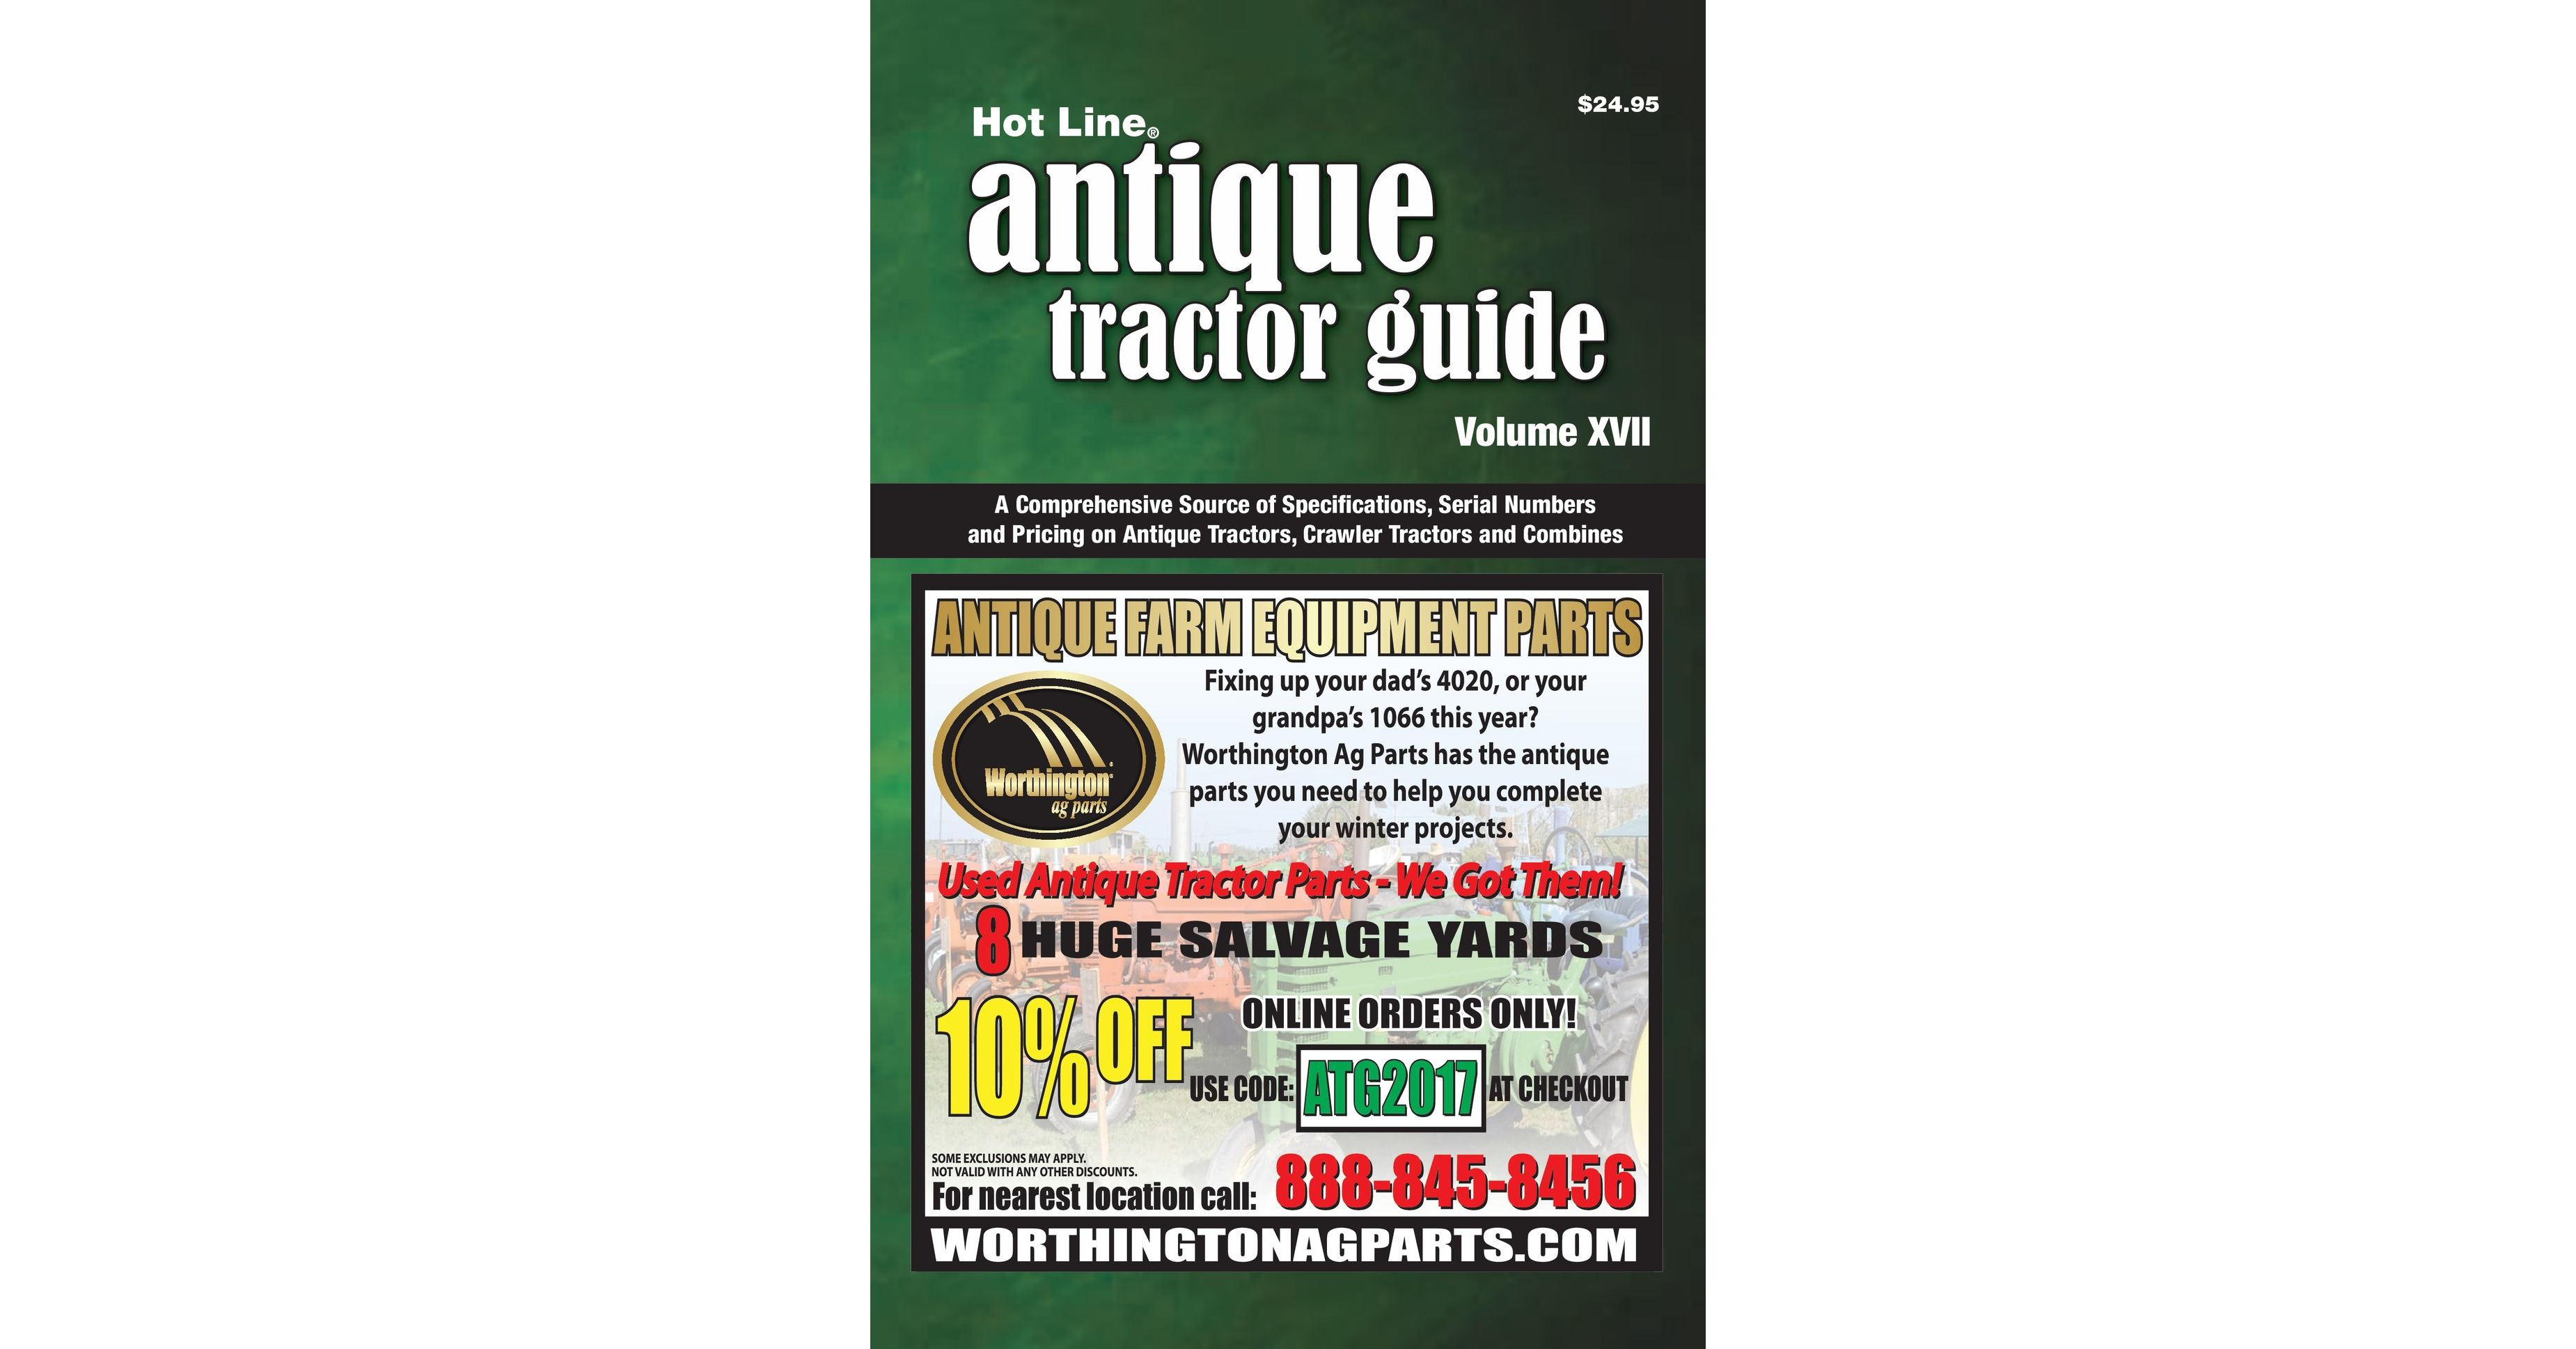 Antique Tractor Guide